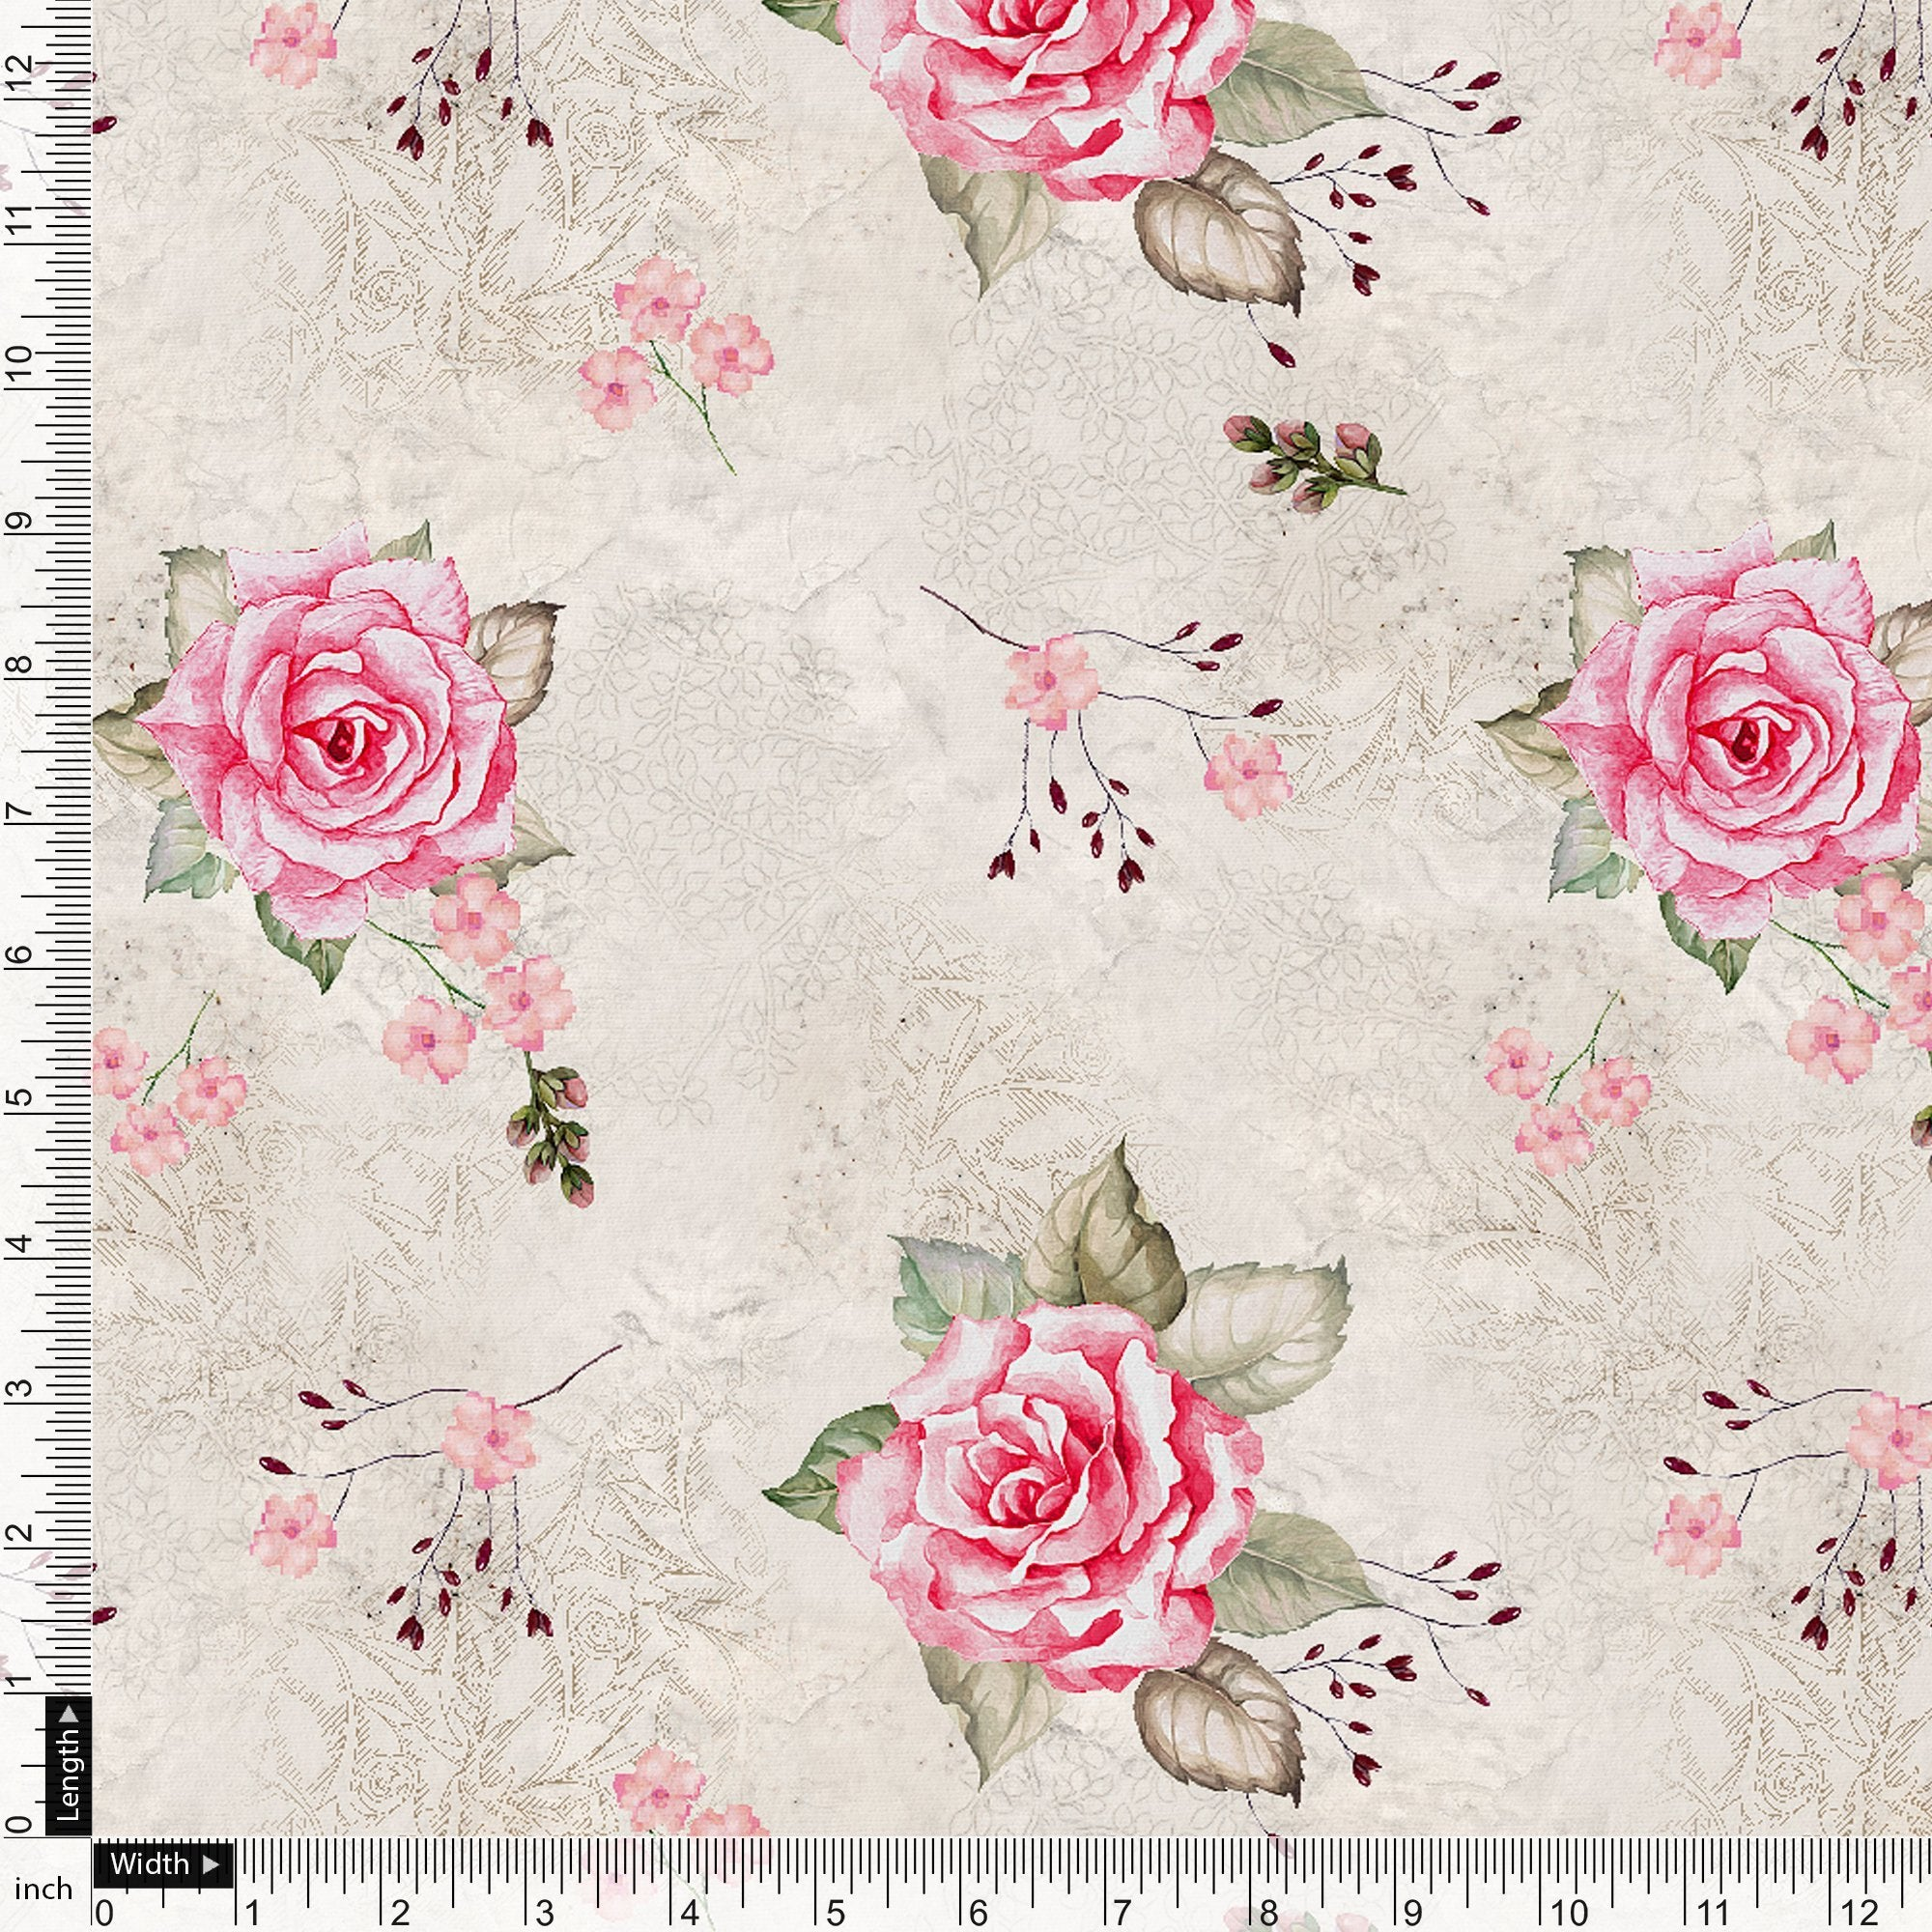 Beautiful Floating Pink Rose Digital Printed Fabric - FAB VOGUE Studio. Shop Fabric @ www.fabvoguestudio.com